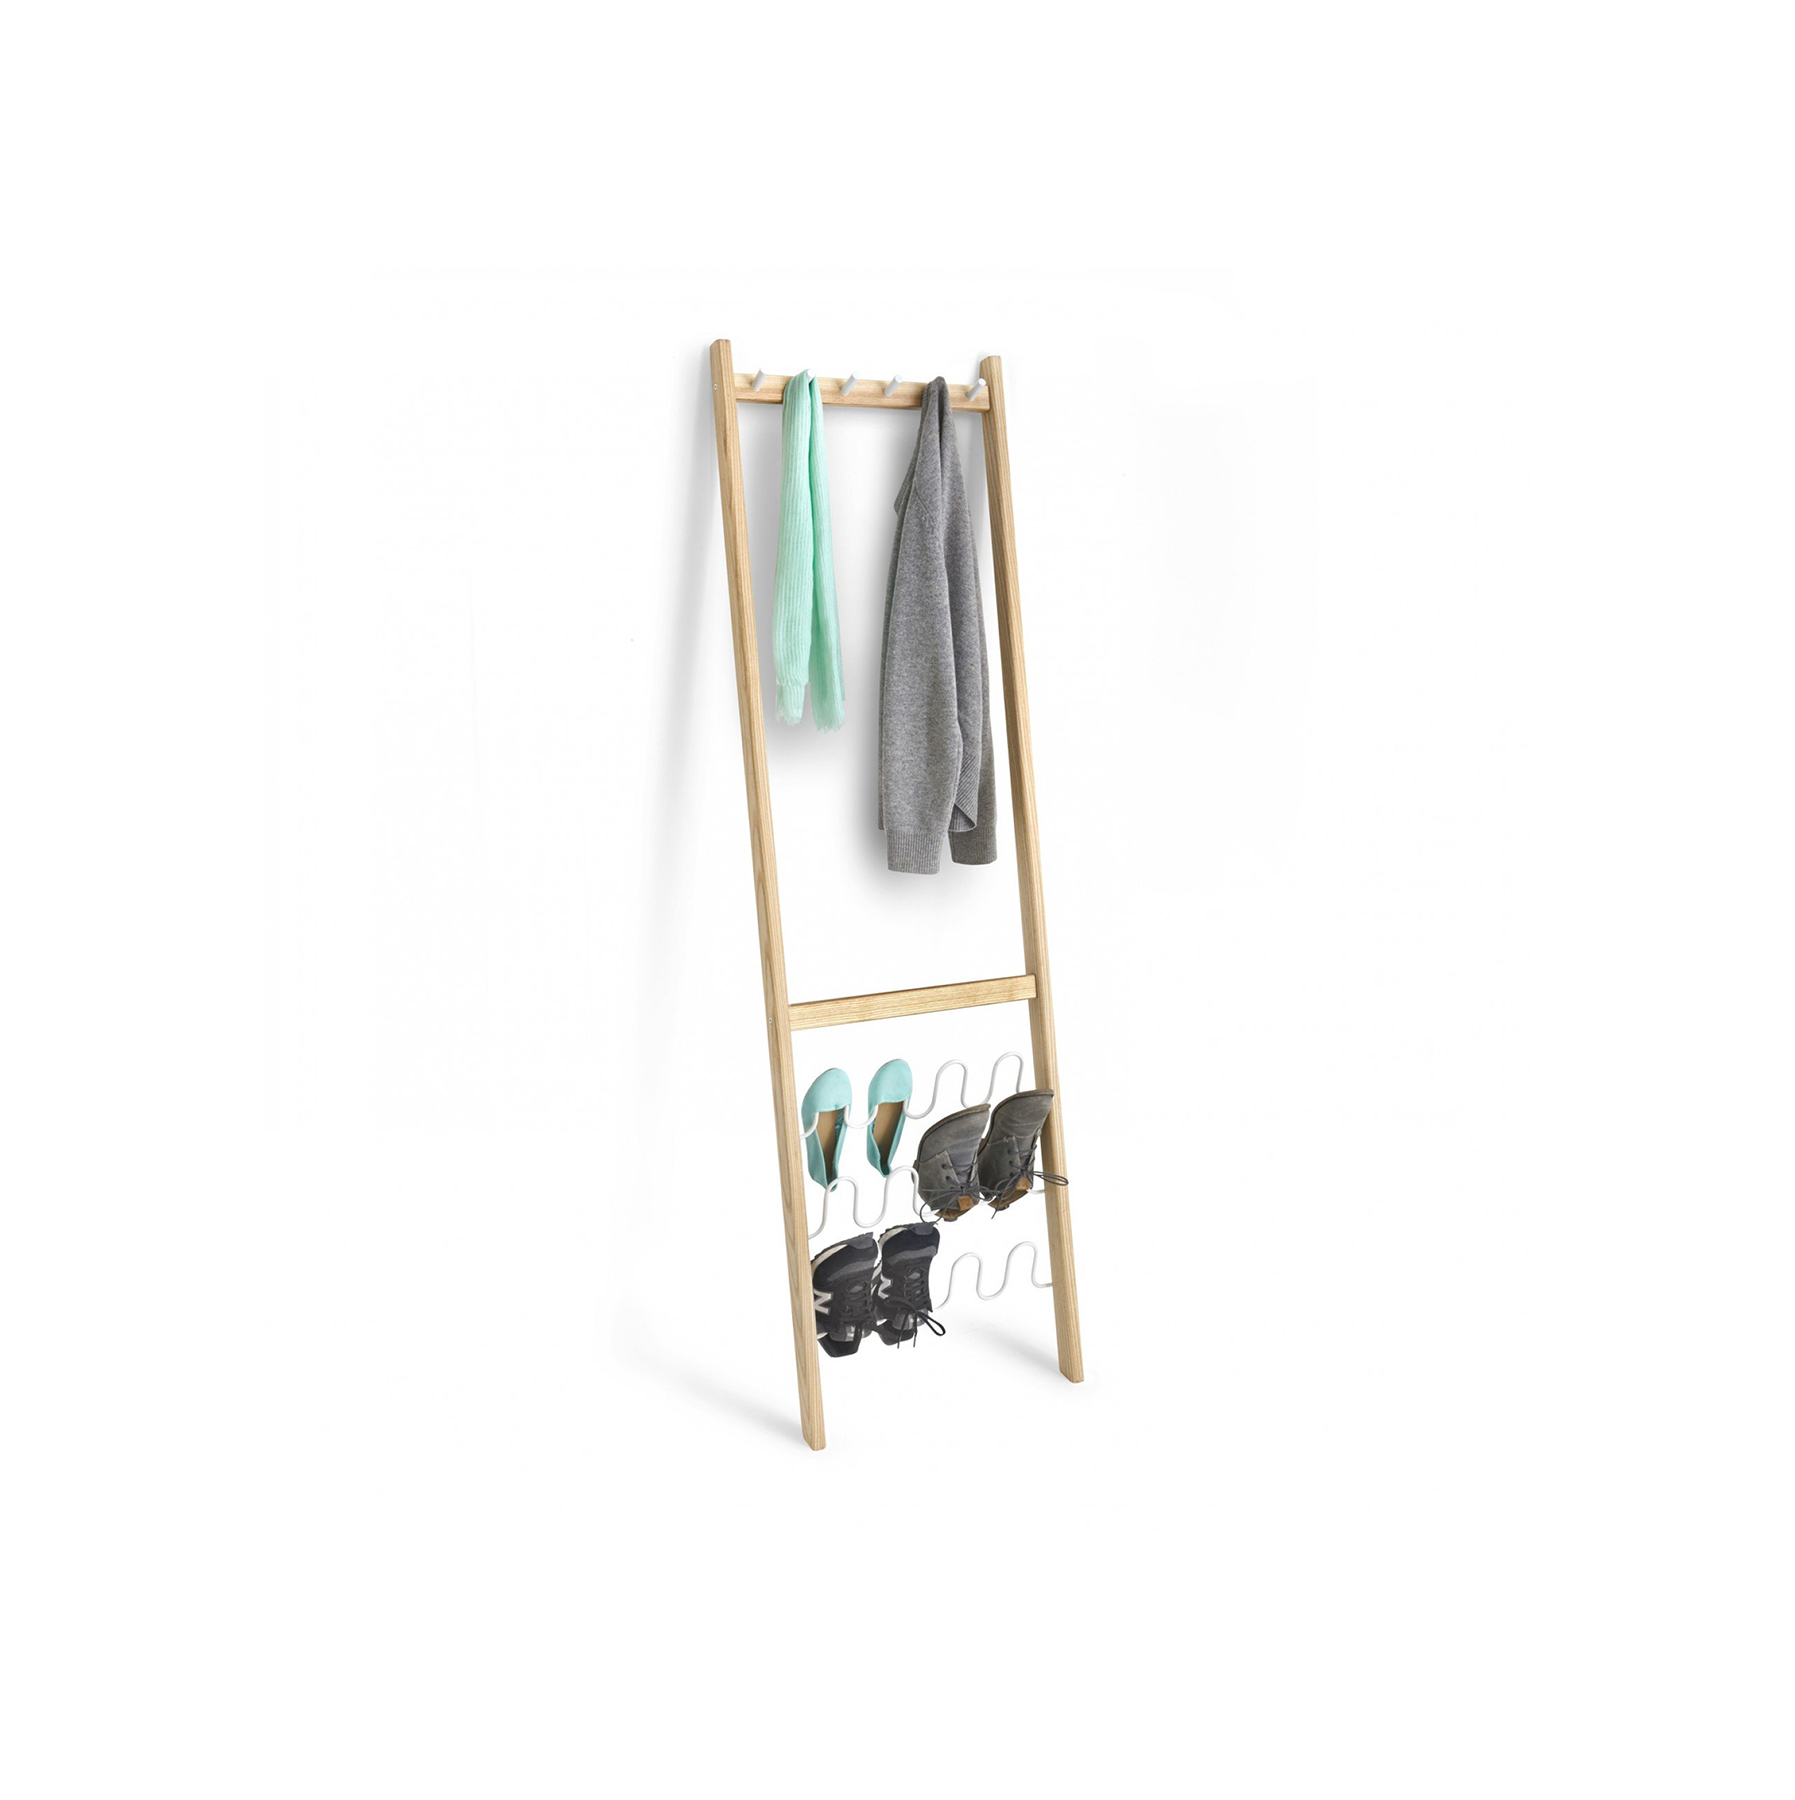 Leanera Coat & Shoe Rack